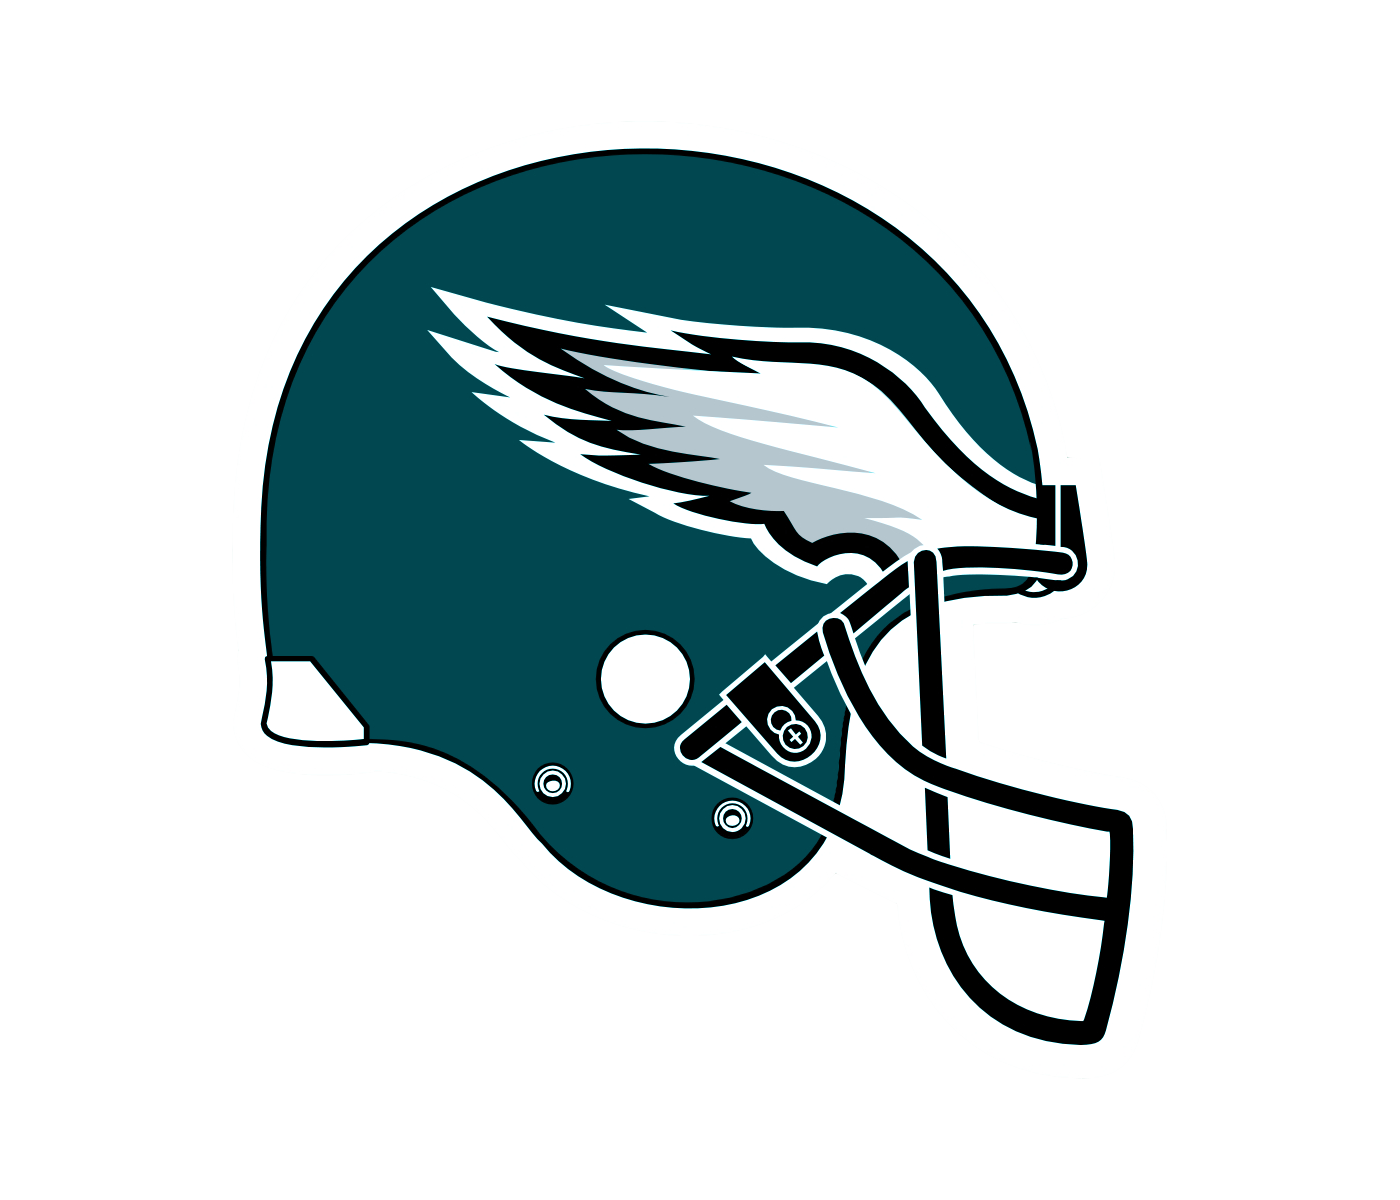 Philadelphia Eagles Super Bowl Lii Chions Logo Giant Officially Licensed Removable Wall Graphic Fathead